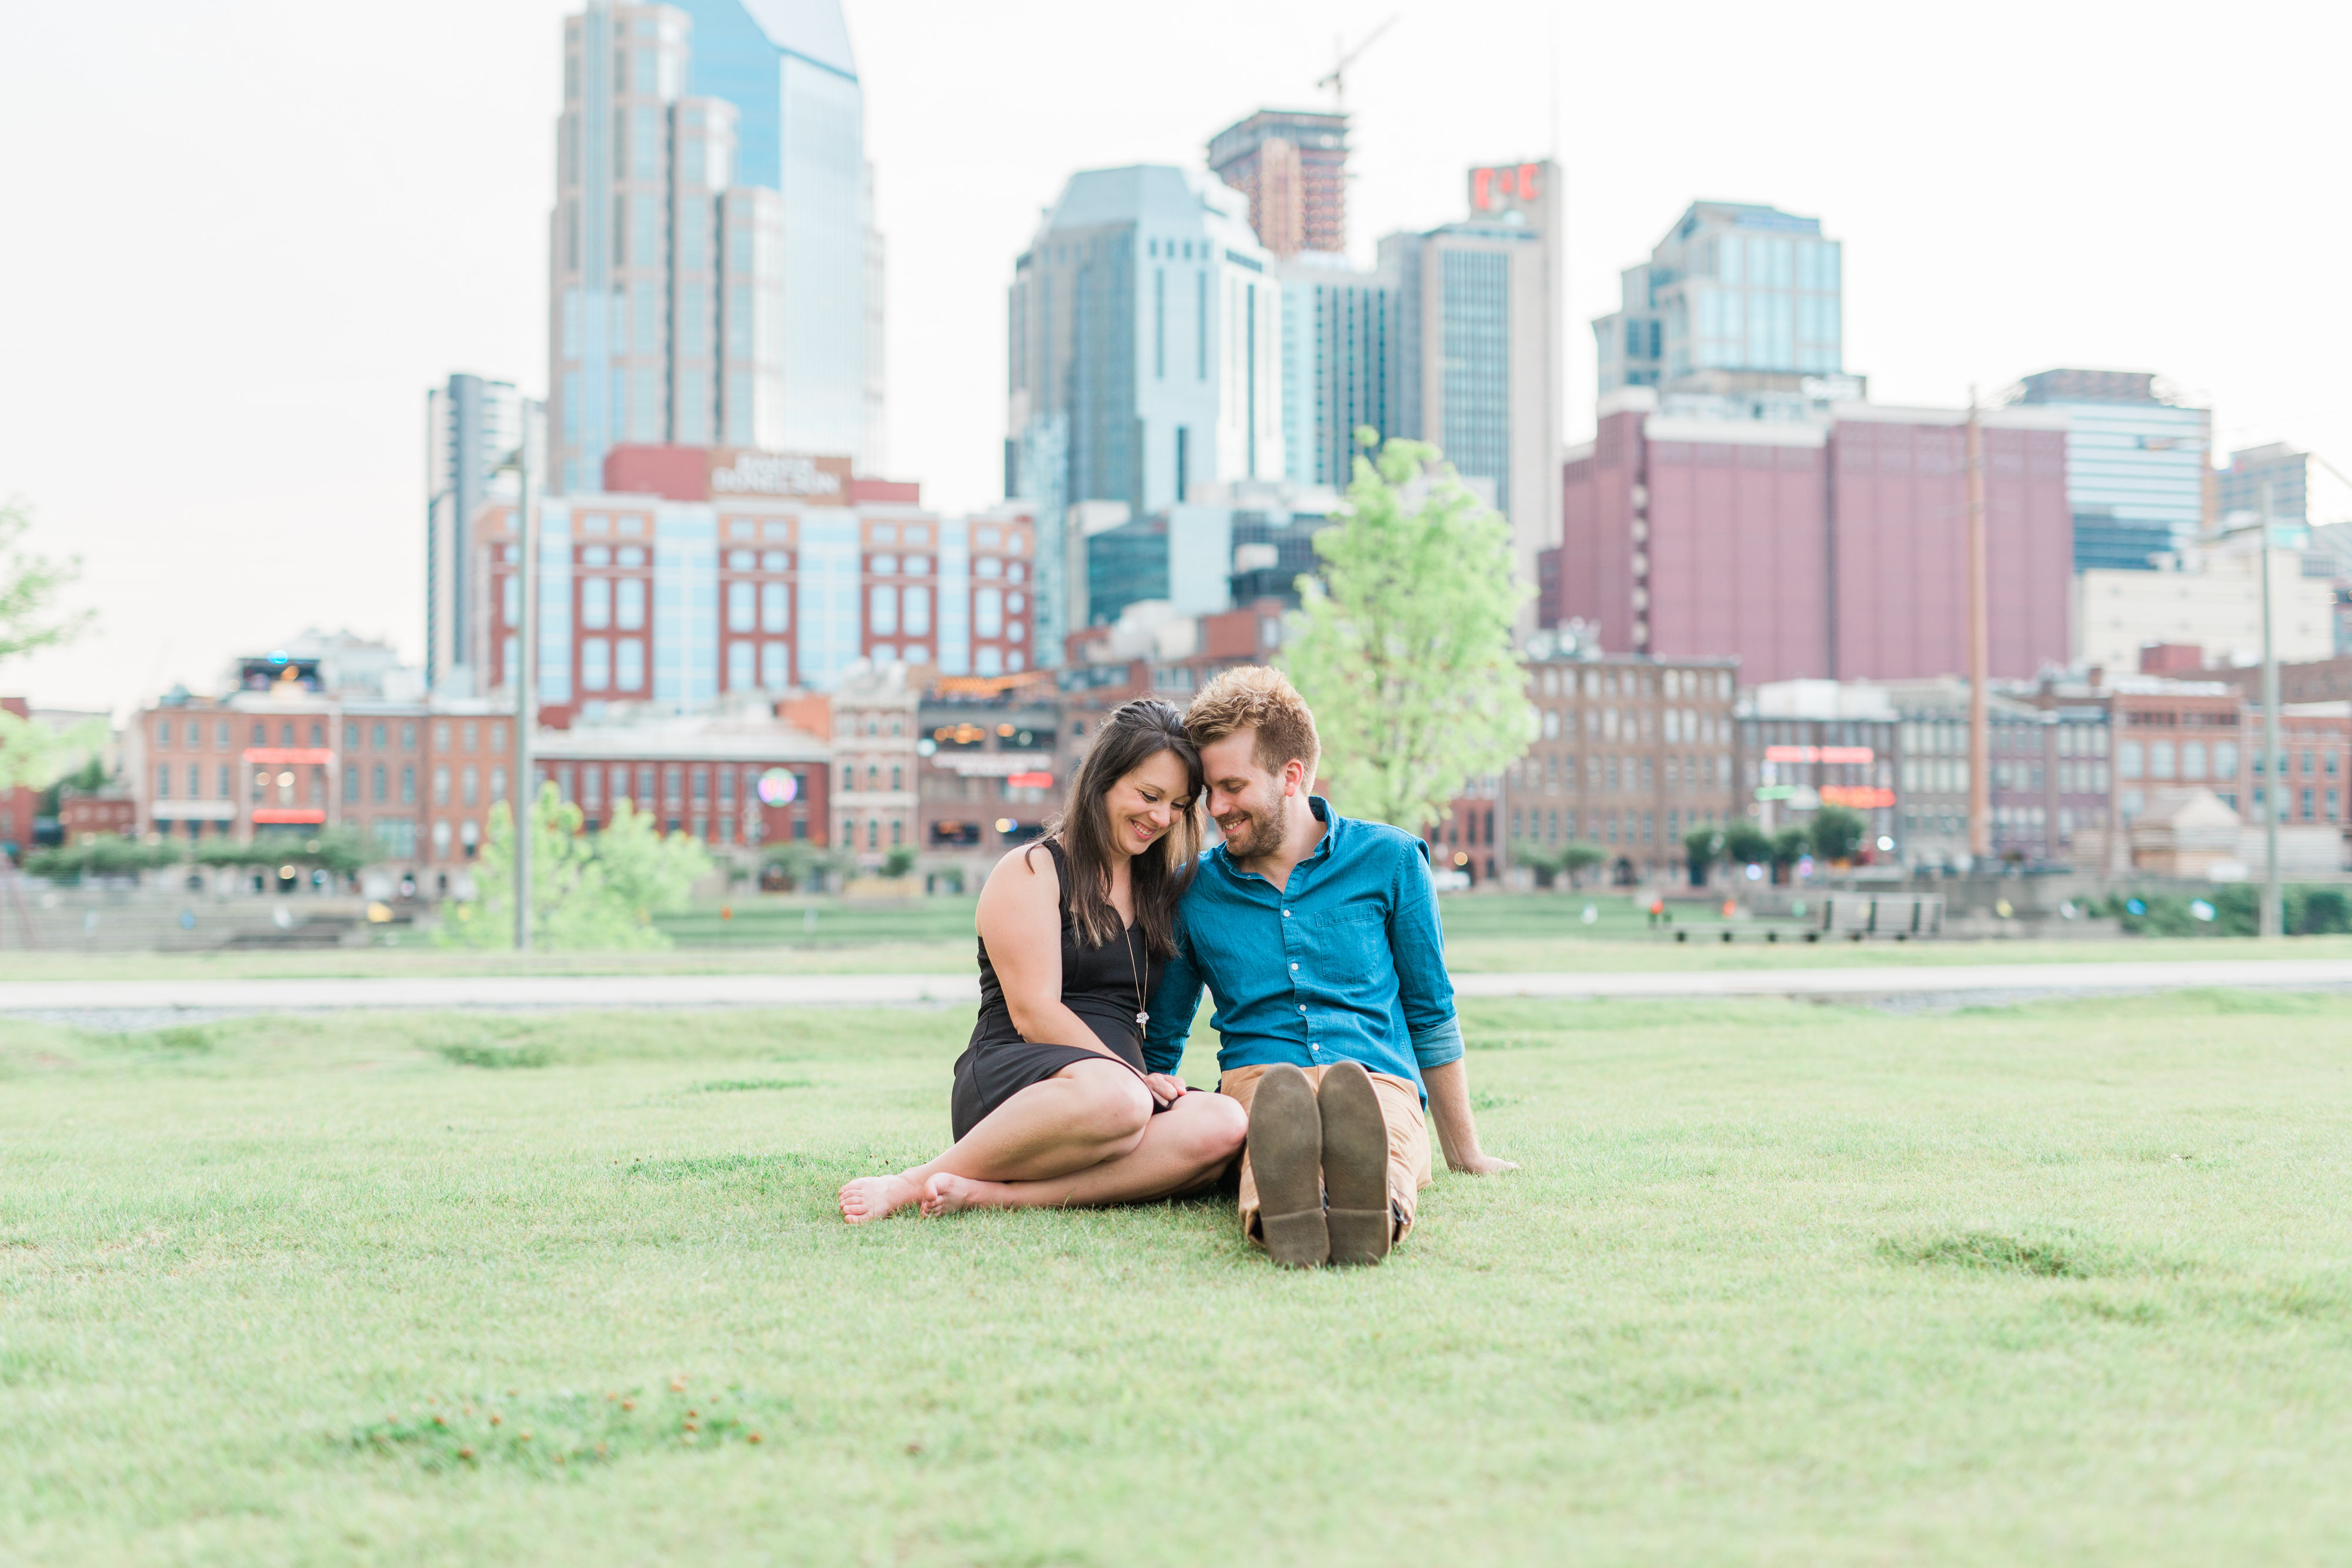 View More: http://andibravophotography.pass.us/kindell-and-kyle-engagement-session